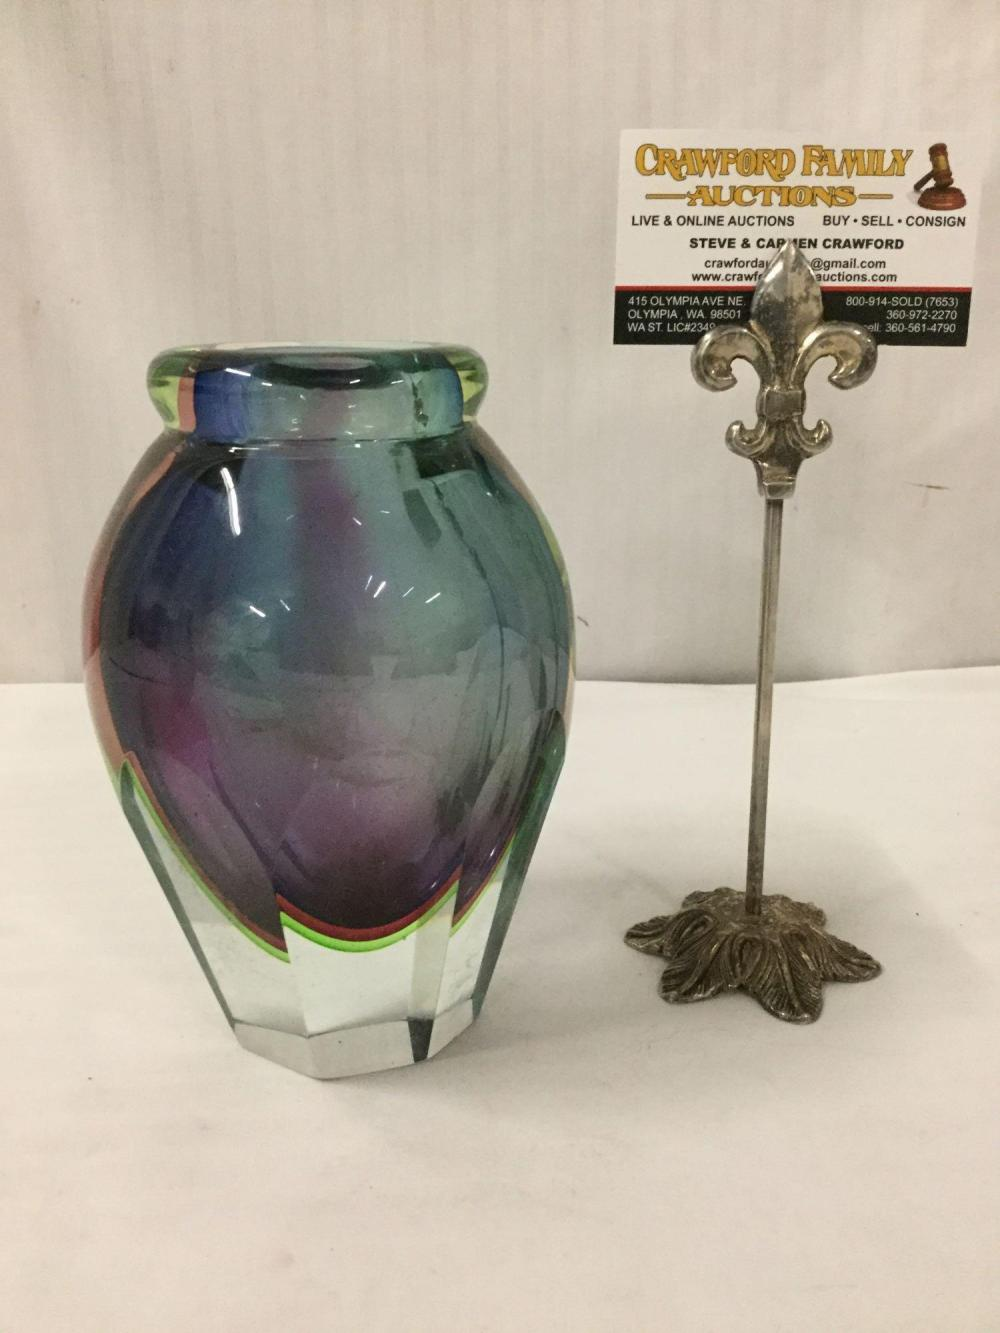 Cut glass multicolor vase w/ an oviod body ending on a tapered base - artist unknown